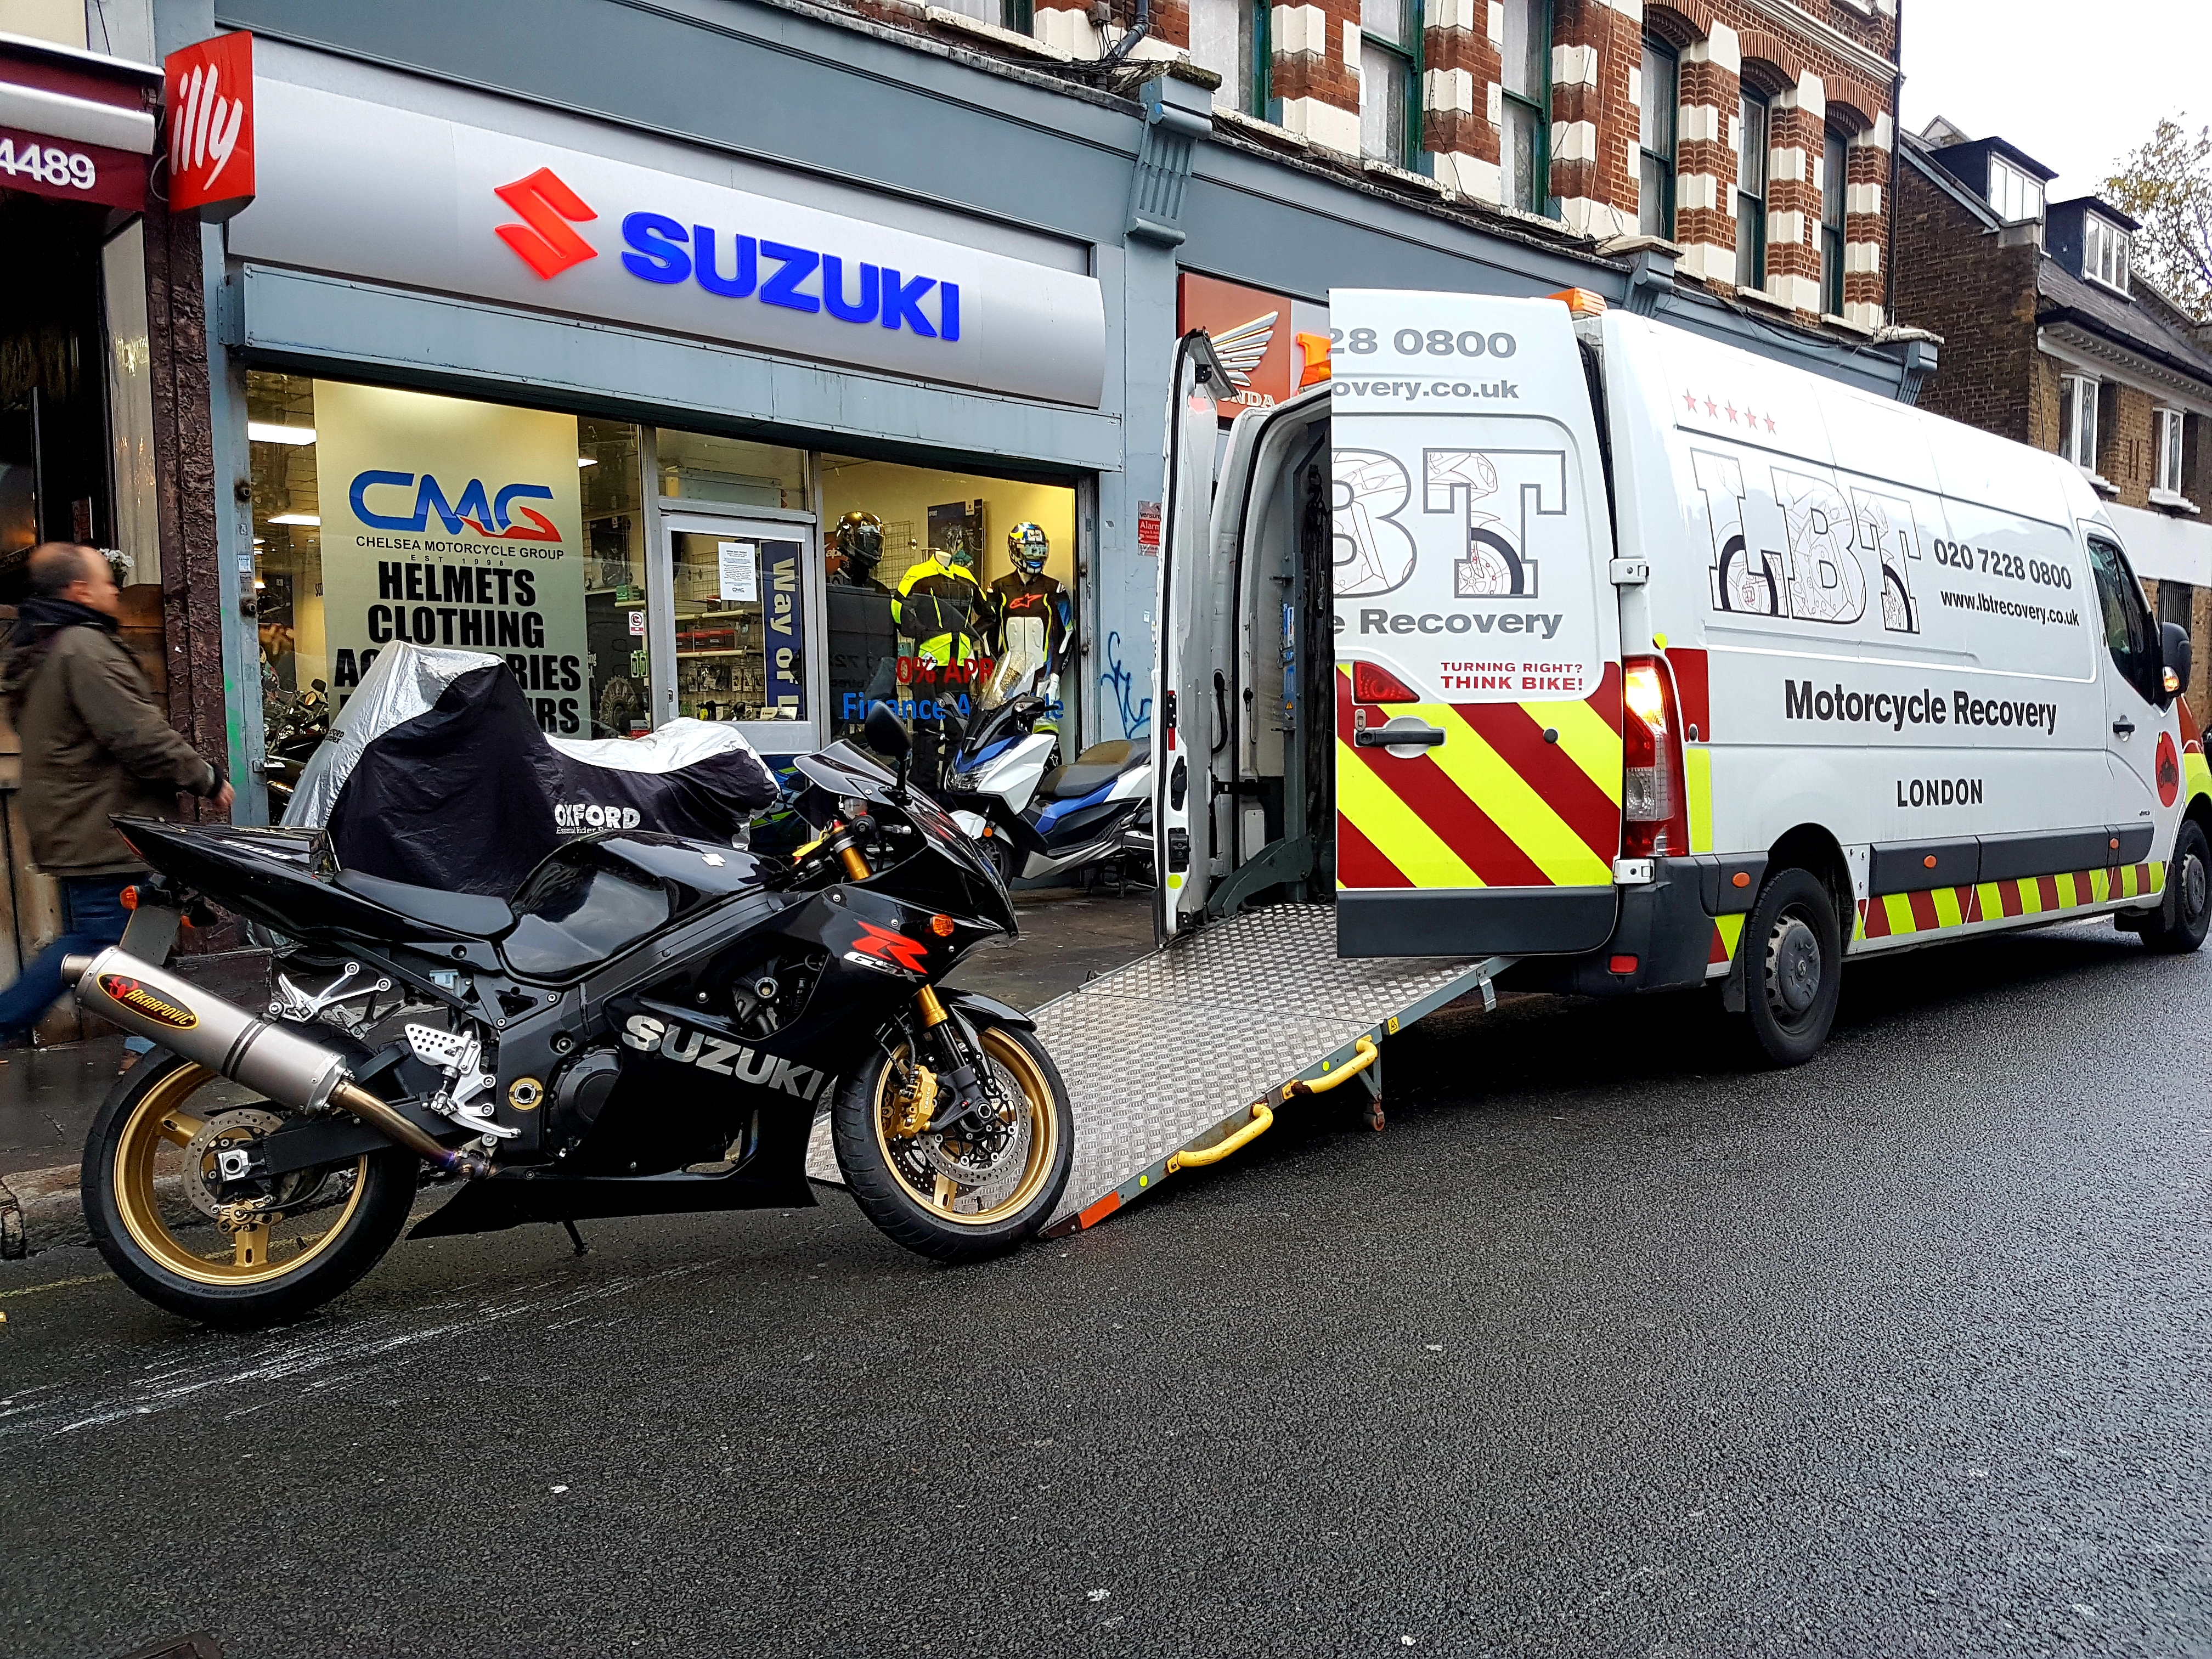 Susuki shop with bike being loaded | LBT Motorcycle Recovery